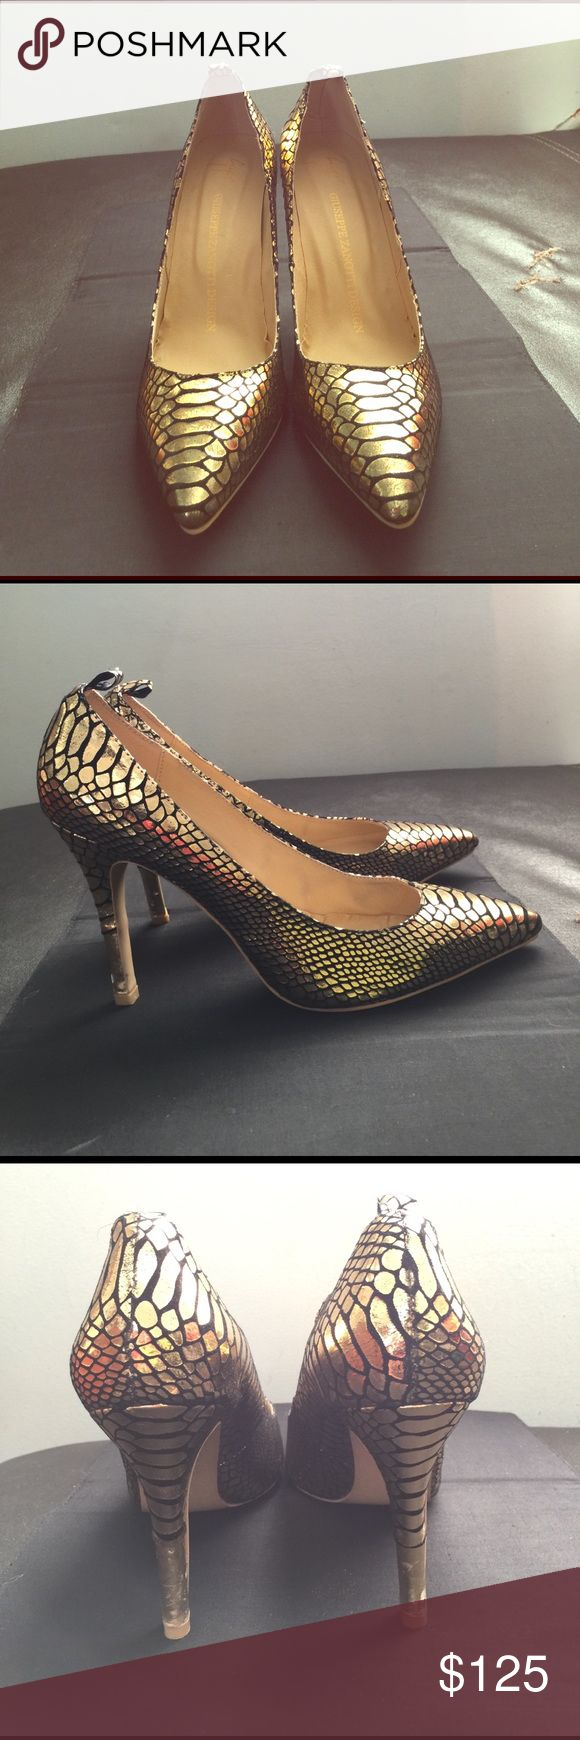 """Giuseppe Zanotti Design shoes Sexy 4""""stilettos, leather with snakeskin print. There is a small area of gold is scratched off on right heel see pic. NWOT Giuseppe Zanotti Shoes Heels"""